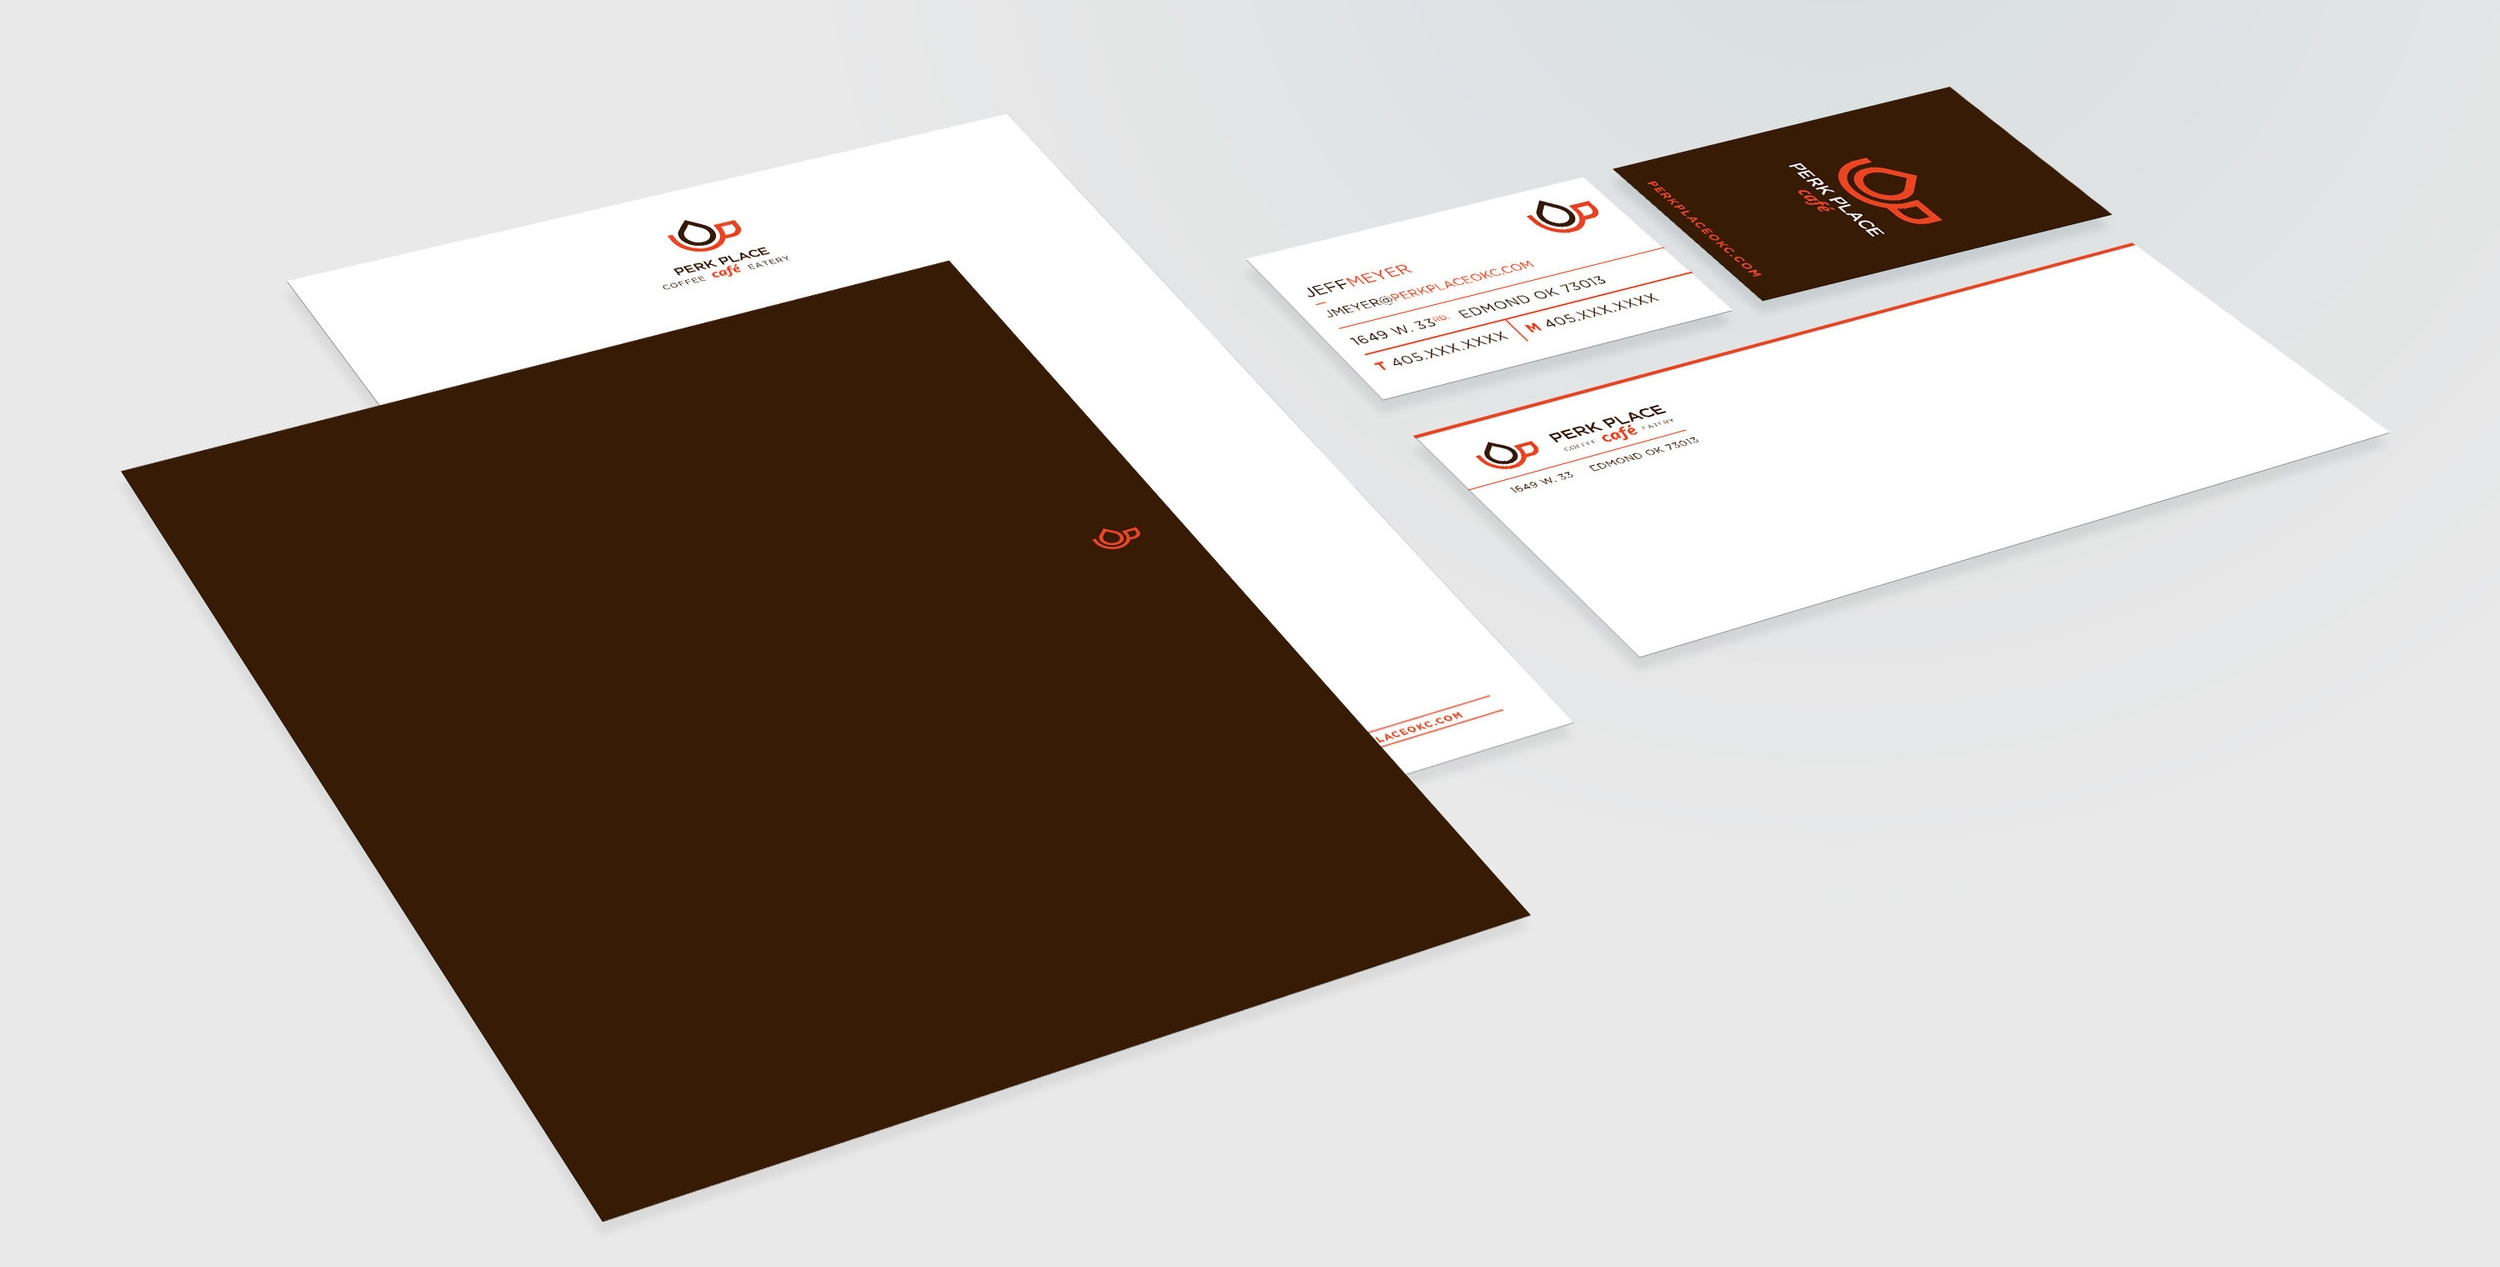 PP_Stationery_Mock_Up_Collection_Xi.jpg